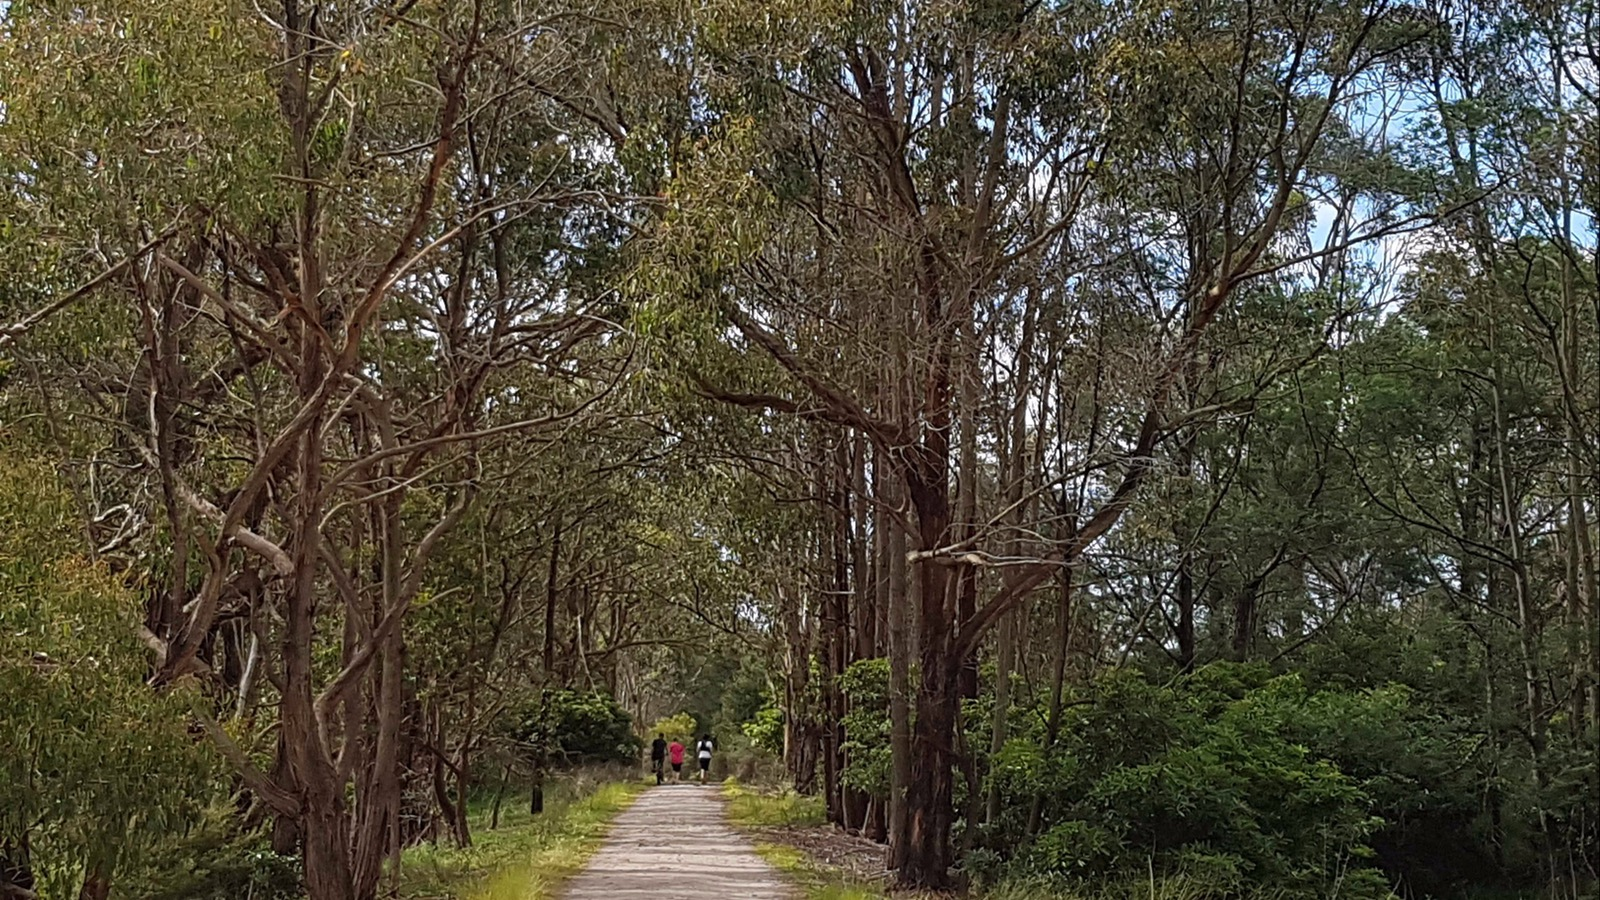 Enjoy the journey along the Great Southern Rail Trail.